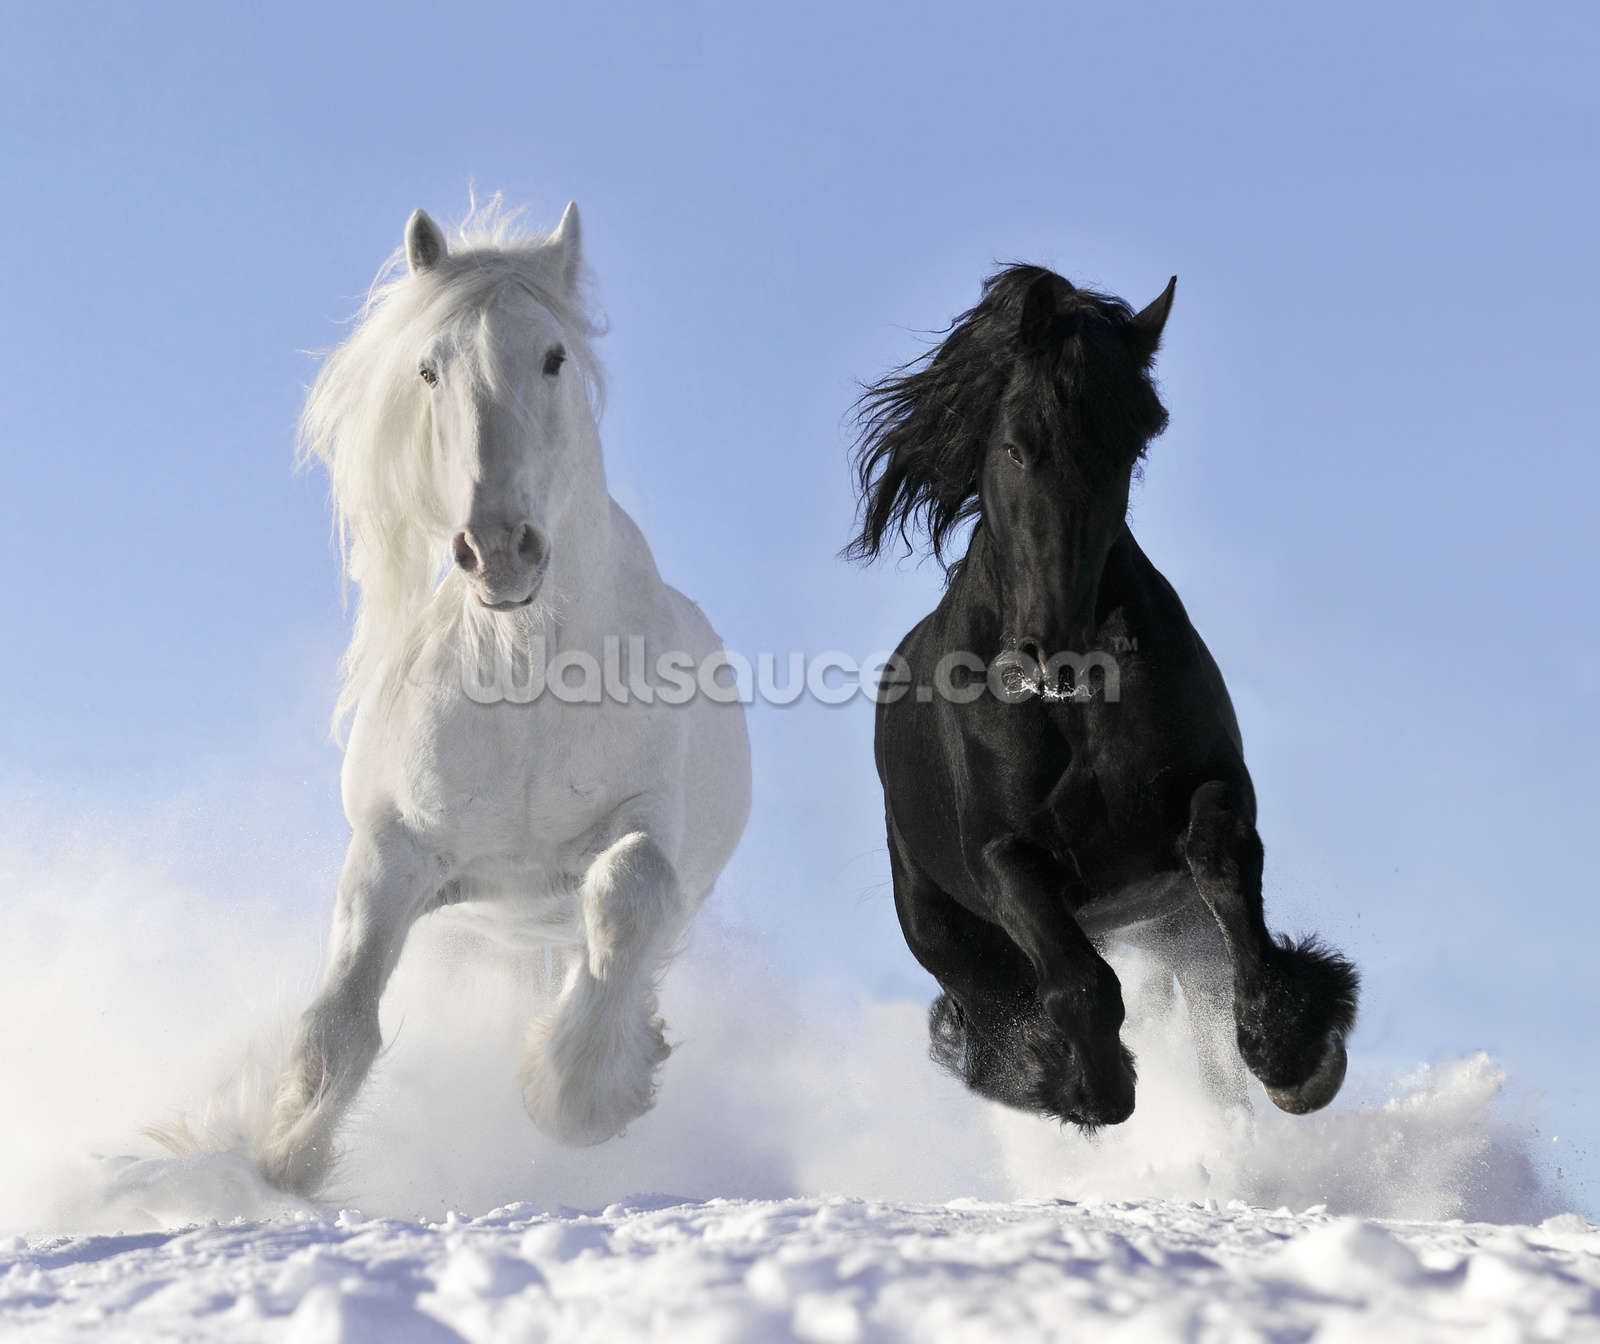 Horses in snow wall mural wall murals horses in snow wall mural amipublicfo Gallery